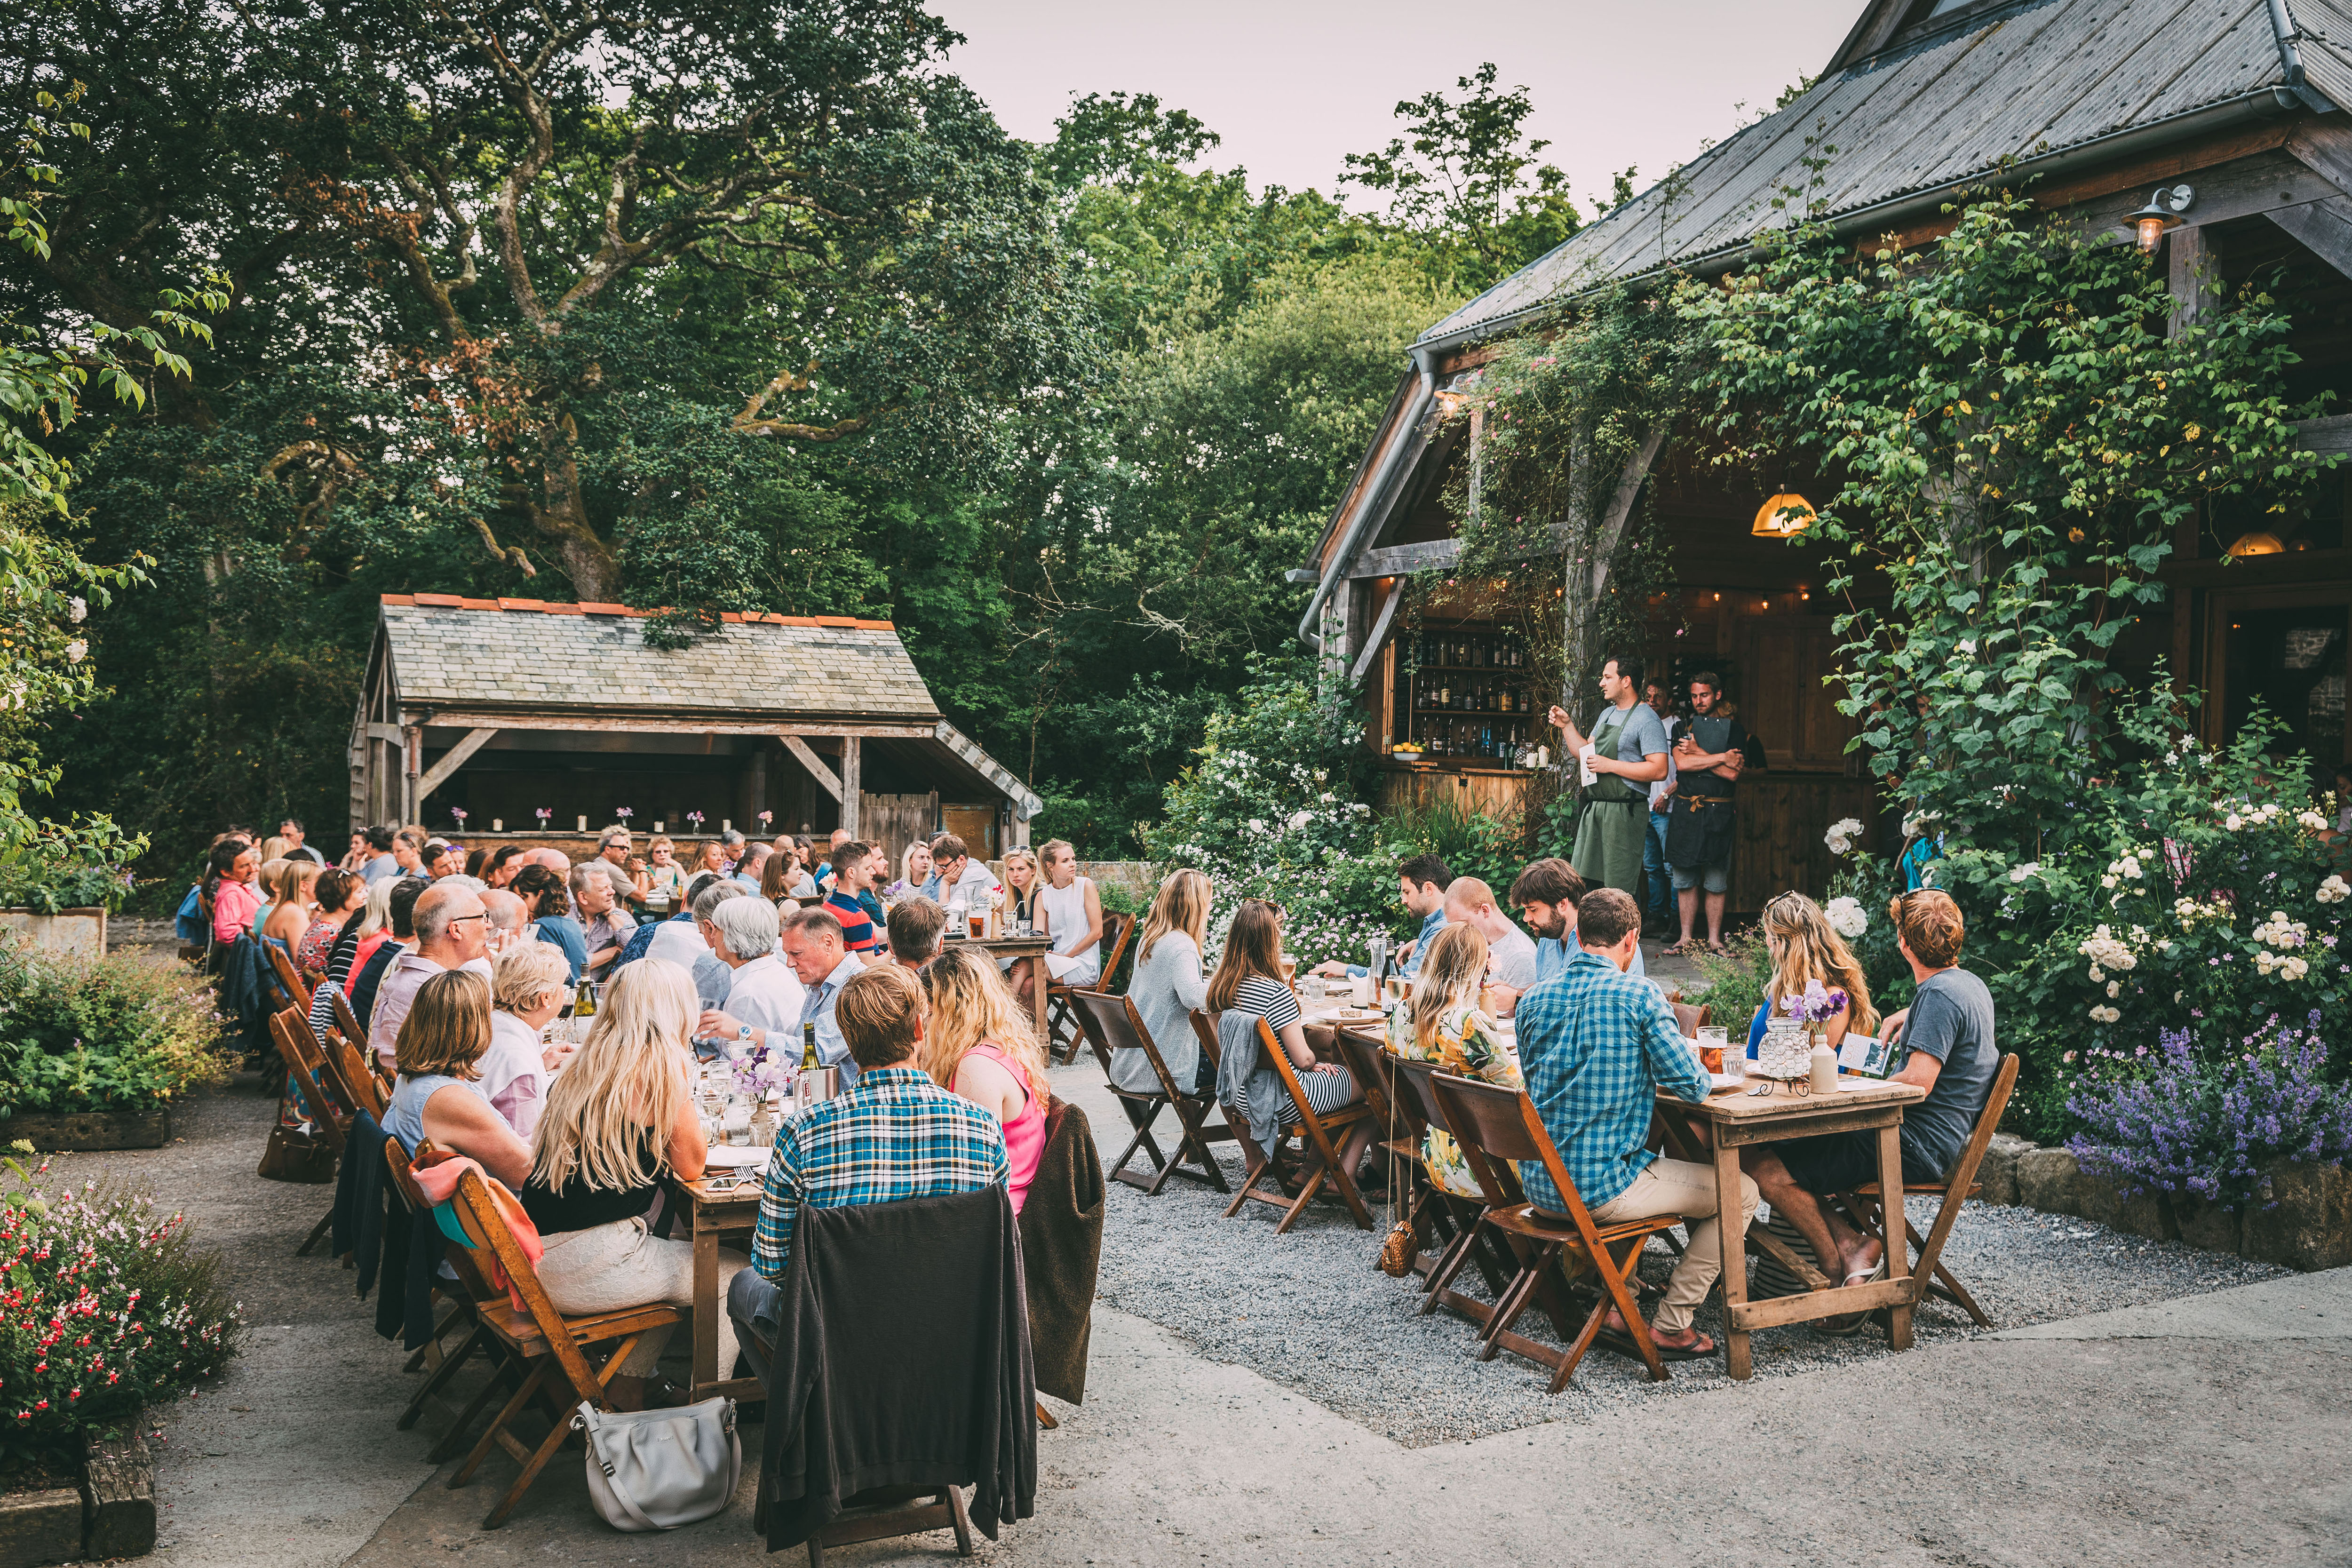 1000 Mouths will take place over four consecutive days from Thursday 5 to Sunday 8 October, with 12 feasts in total on Nancarrow Farm in Cornwall.